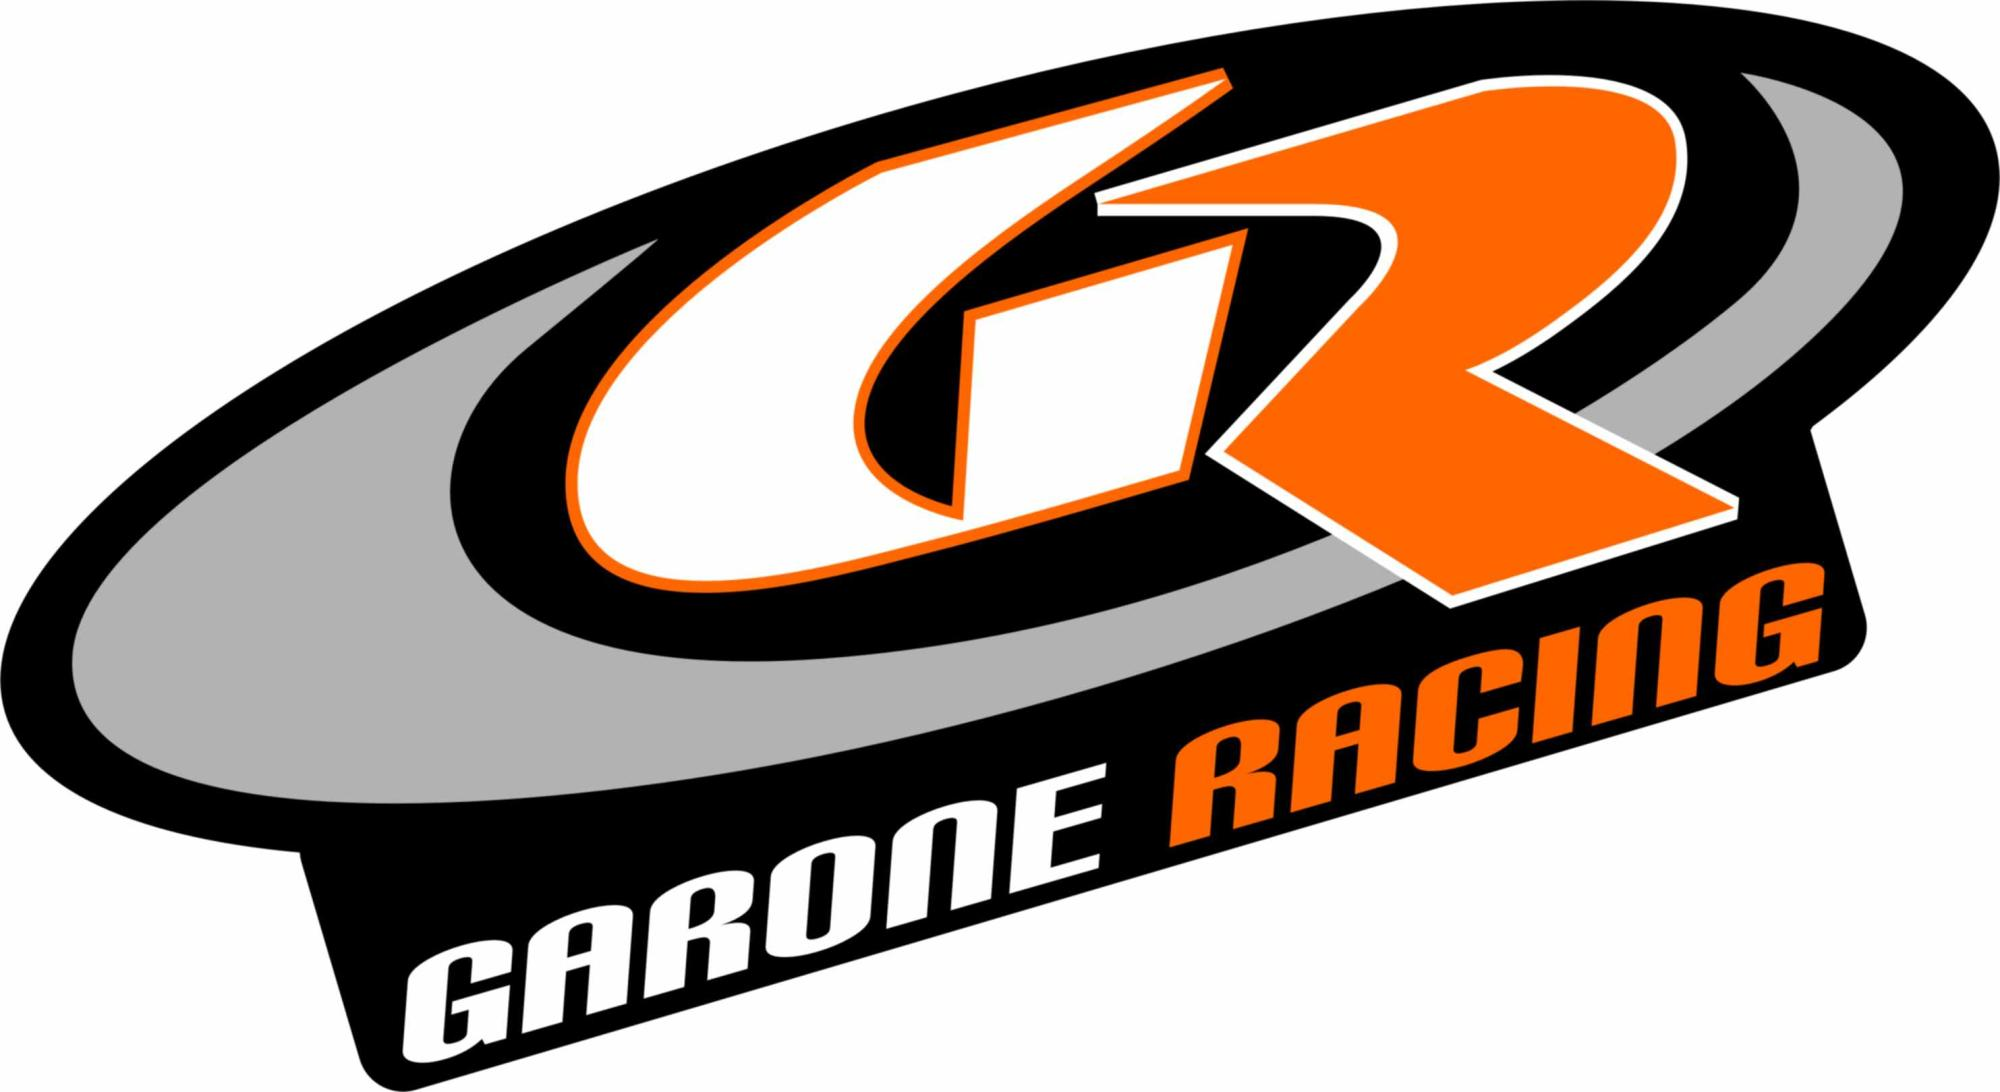 Garone Racing